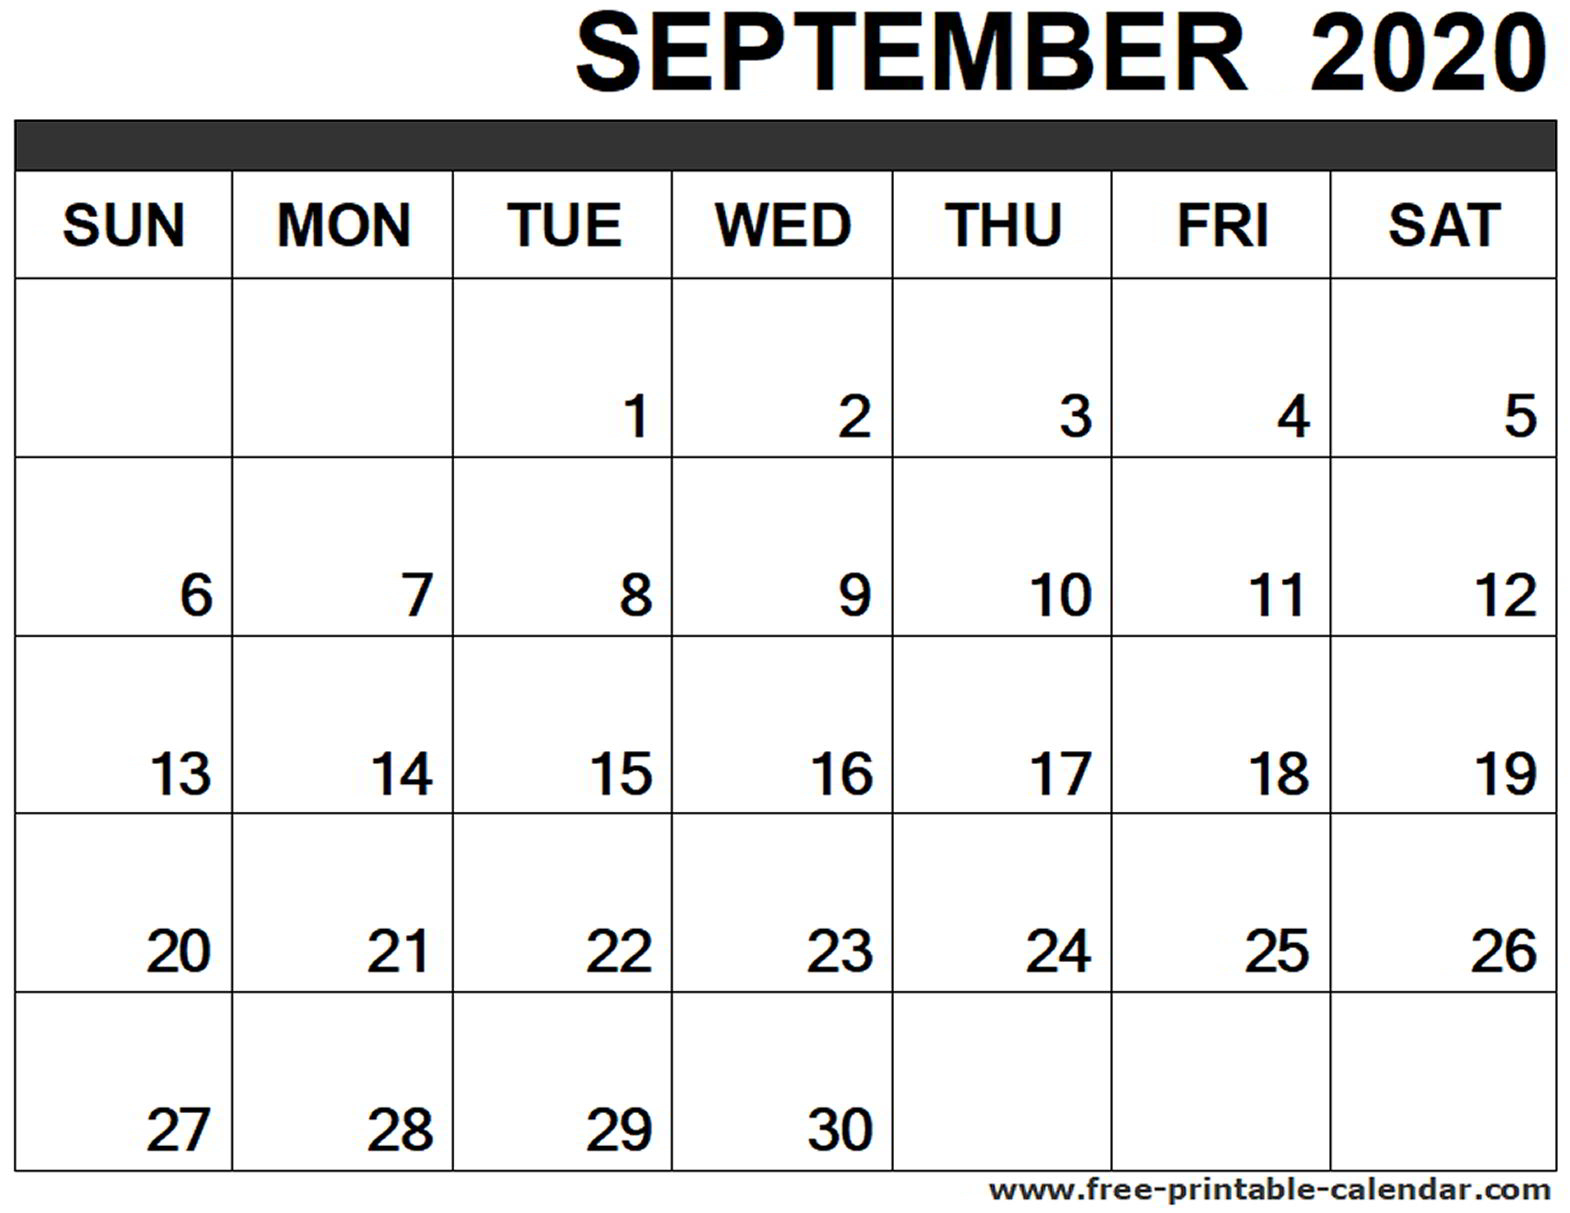 September 2020 Calendar Printable - Free-Printable-Calendar for 2020 Calendar To Fill In